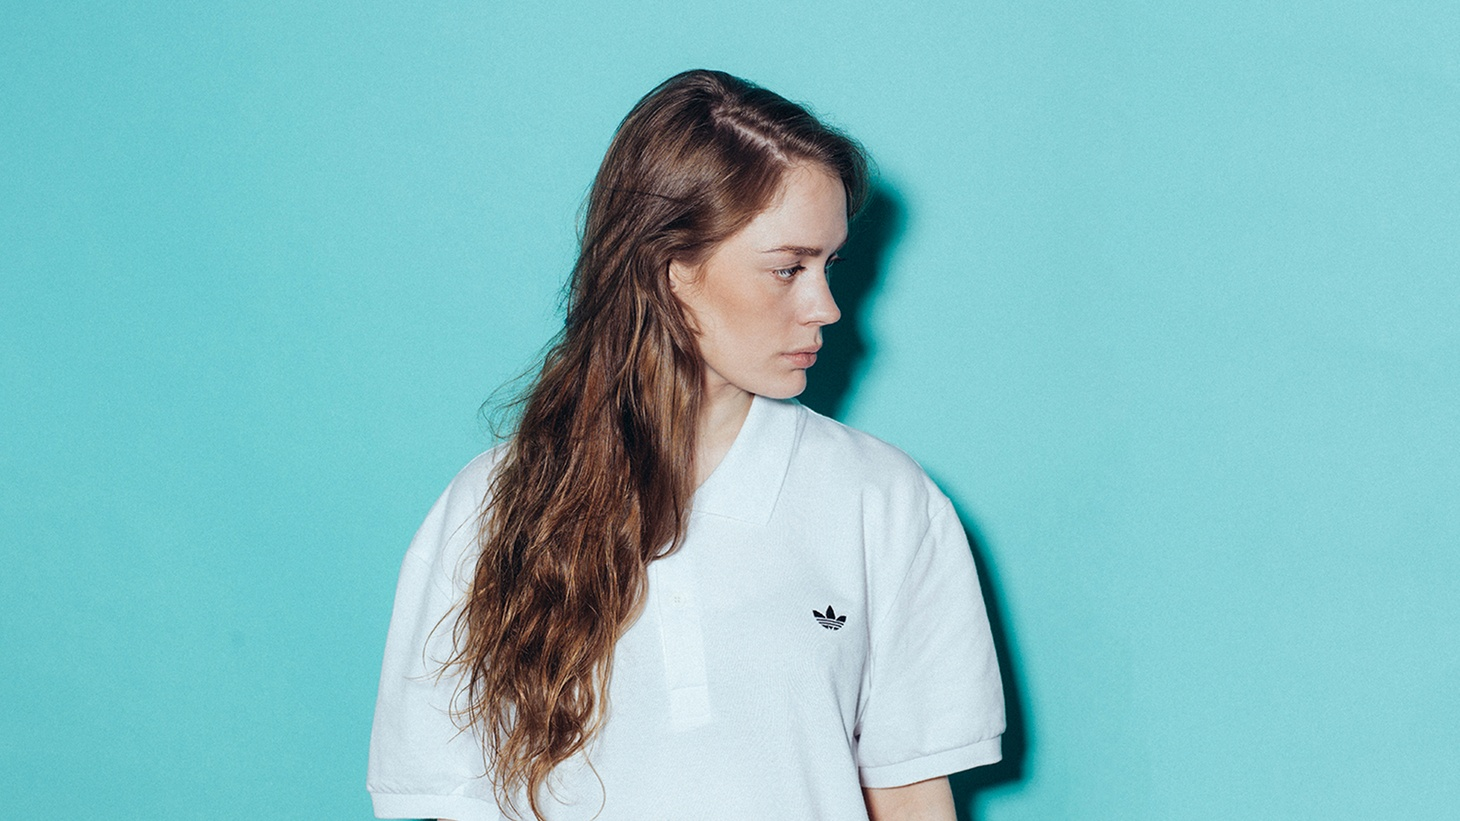 Norway-based duo Anna of the North came up with an upbeat break-up song that helps heal the hurt on their new single.